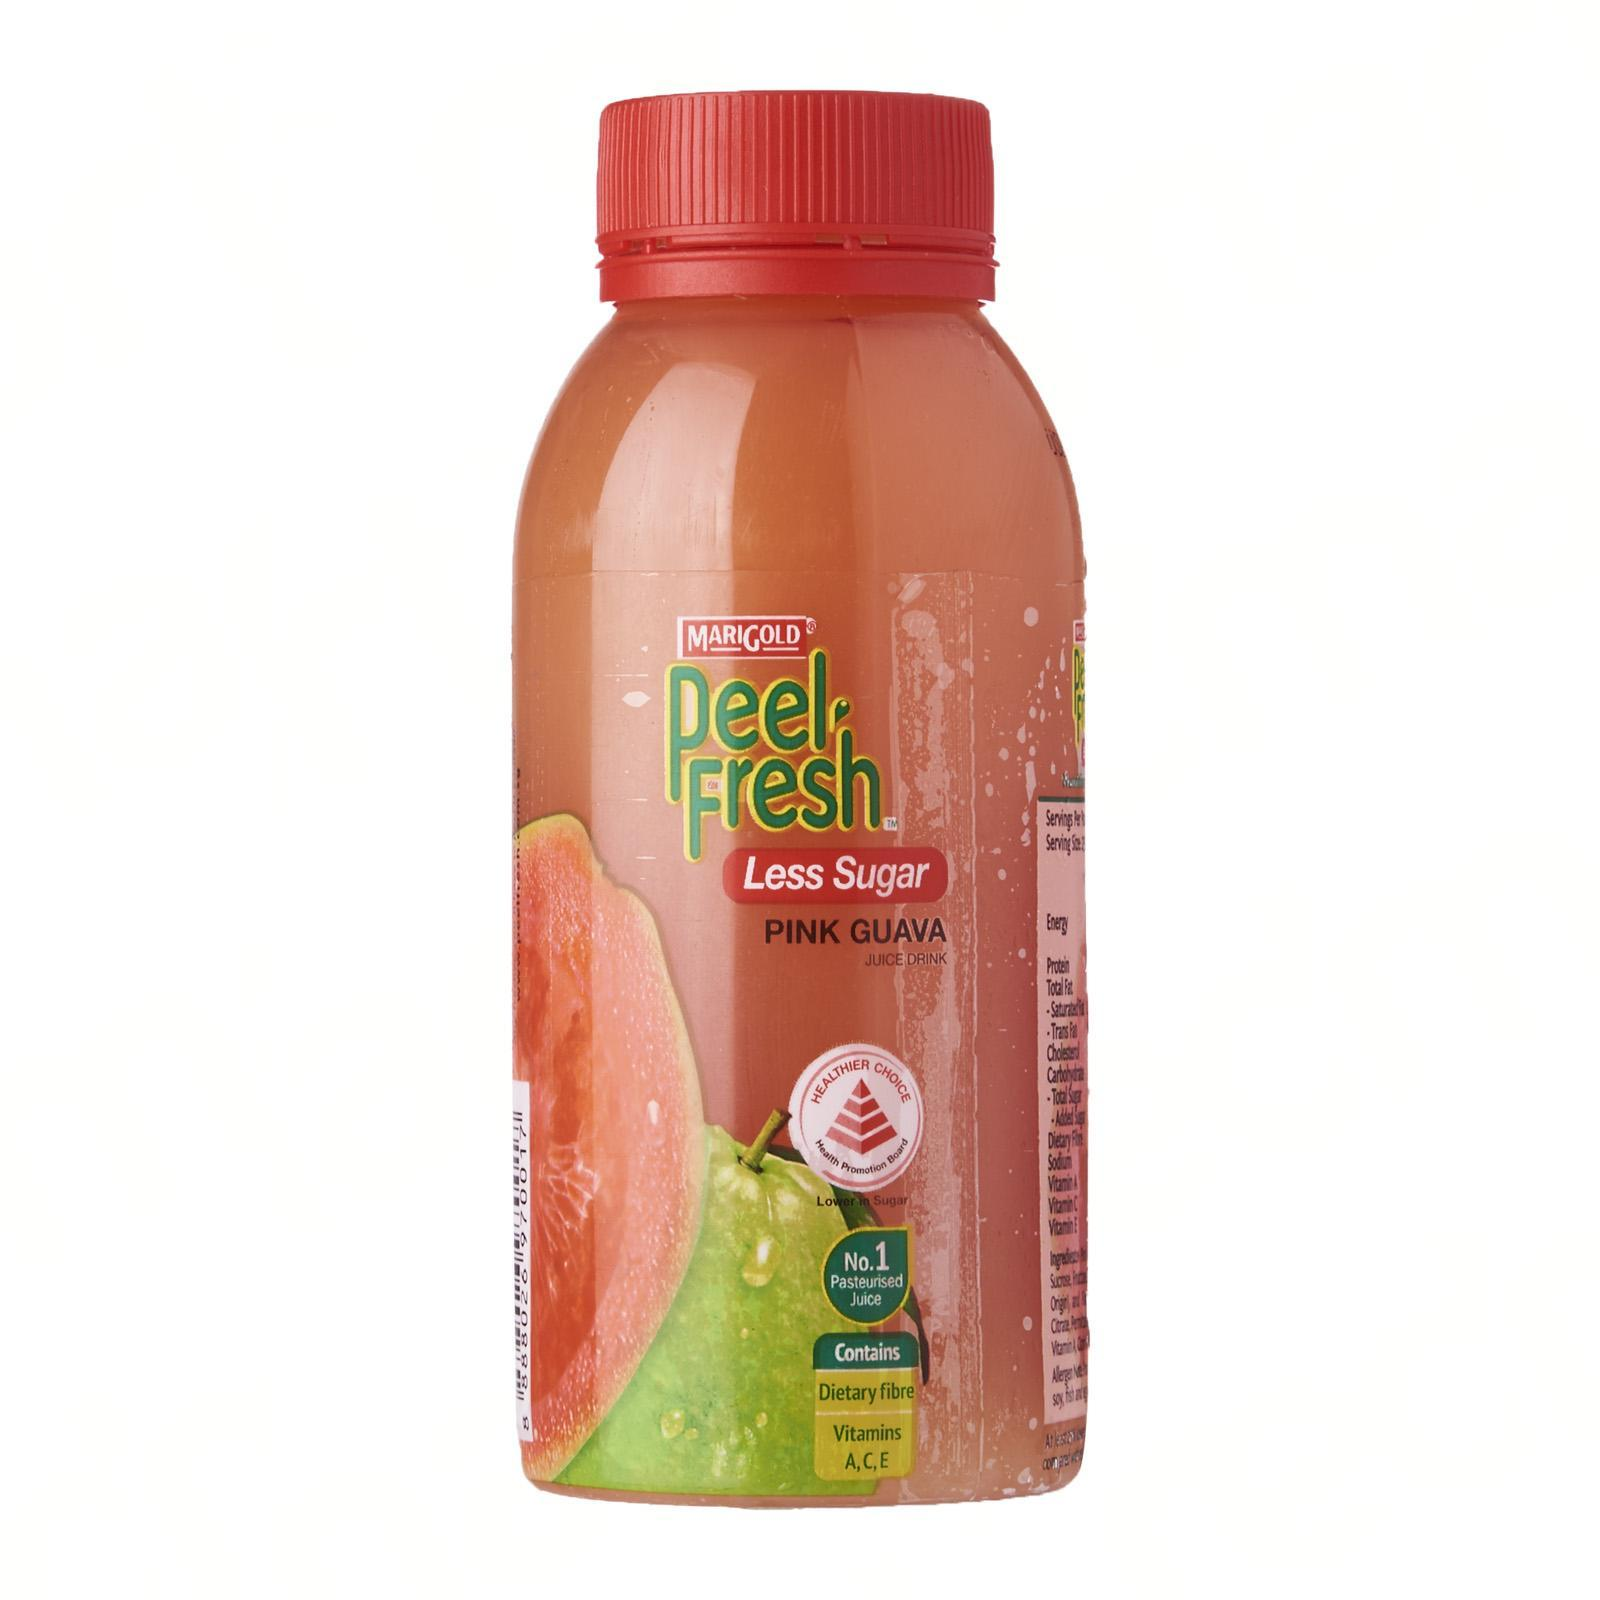 MARIGOLD Peel Fresh Less Sugar Juice Drink - Pink Guava 250ML